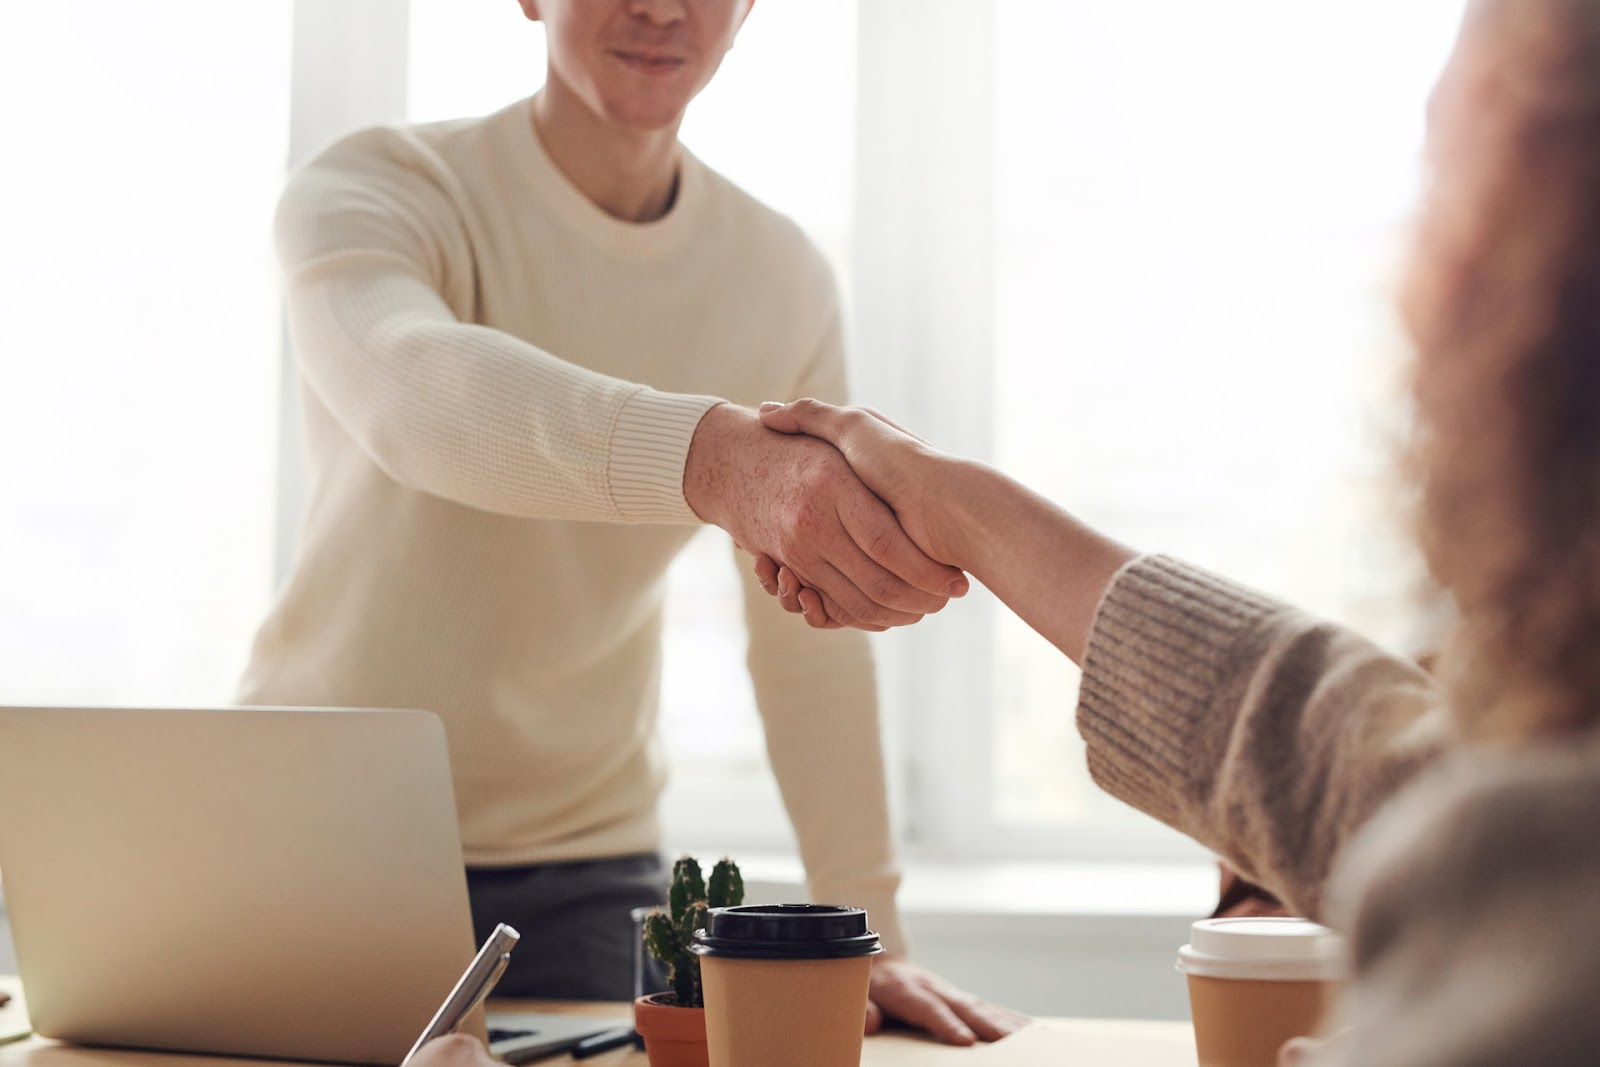 A man and a woman shake hands across a desk while they are smiling. It looks like they are striking some kind of agreement. Hopefully, you are able to create an agreement with a sponsor who will offer your STEM Club funding.